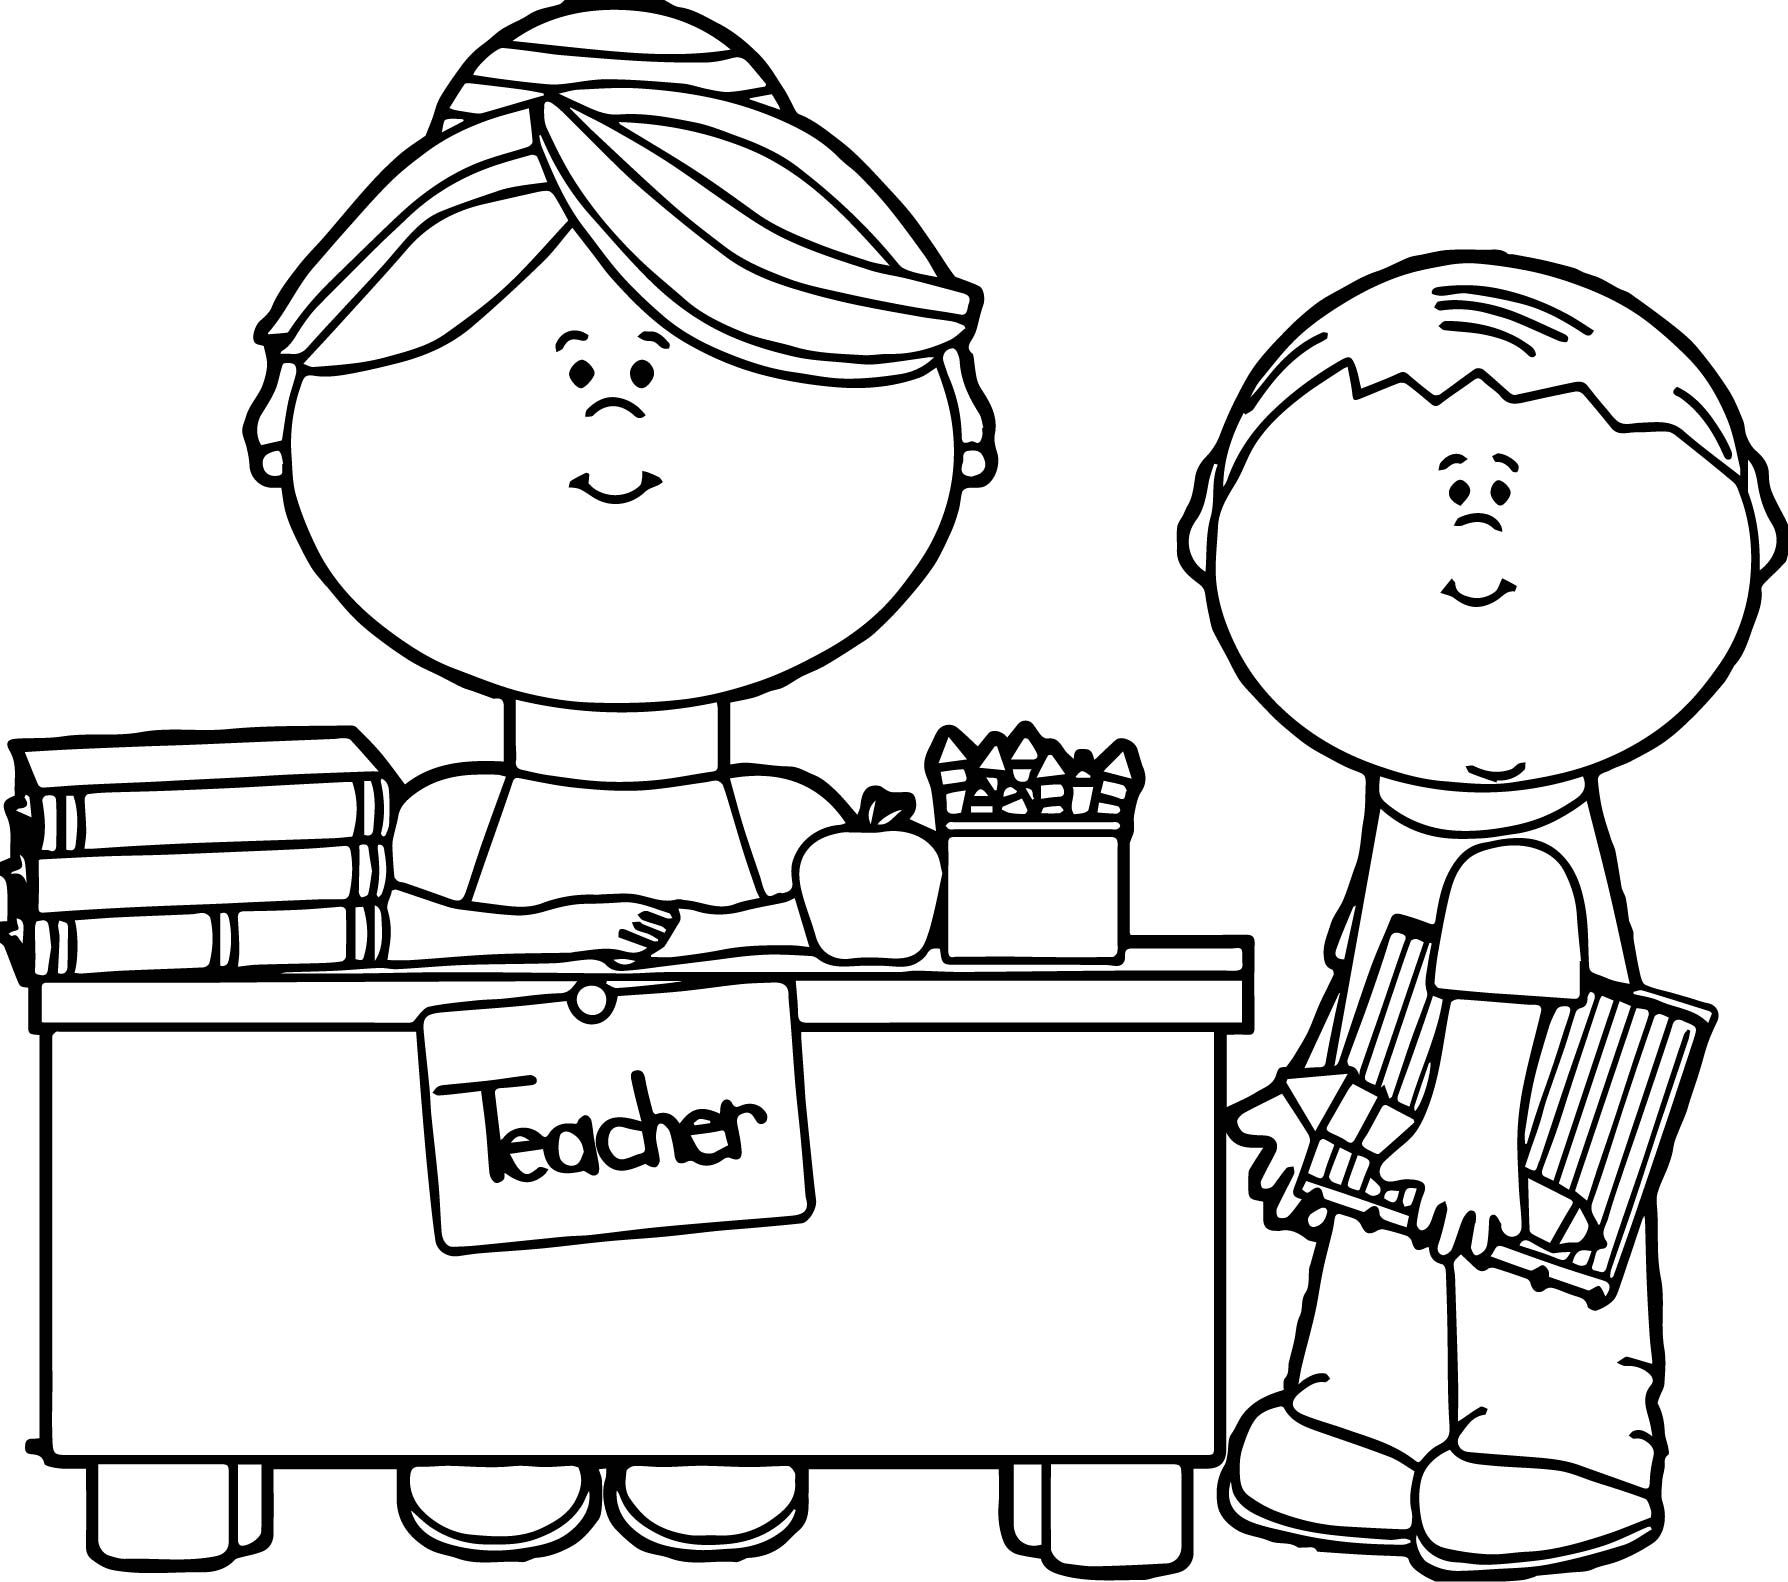 student coloring clipart english teacher and student coloring page english teacher coloring clipart student